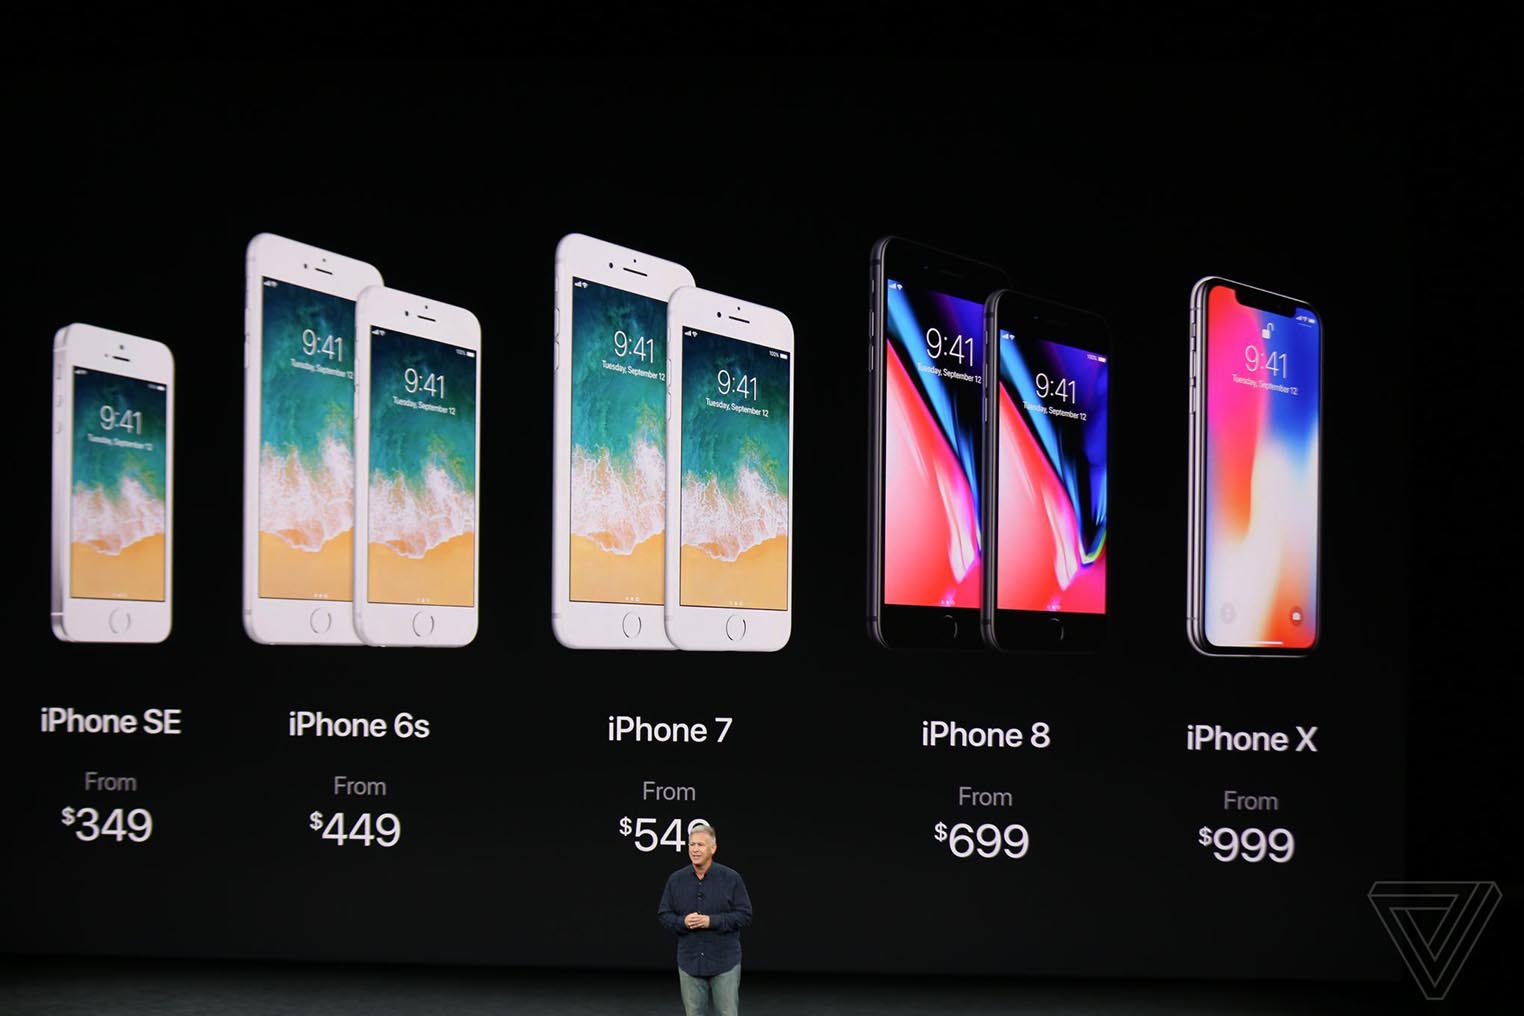 iPhone SE keynote